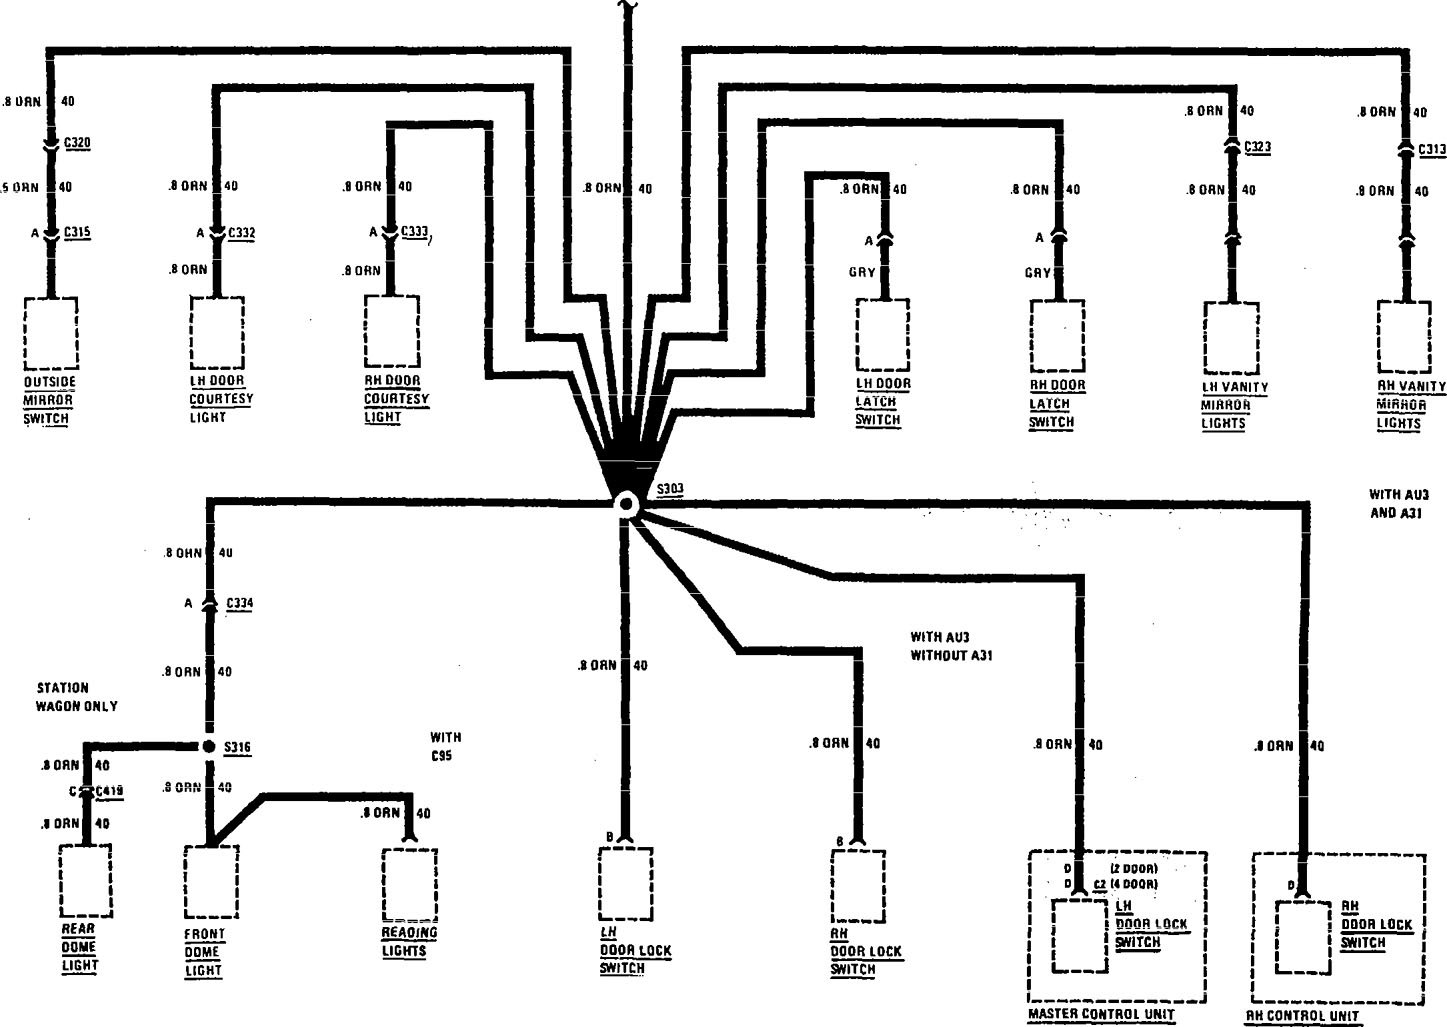 91 buick regal fuse panel  buick  auto fuse box diagram